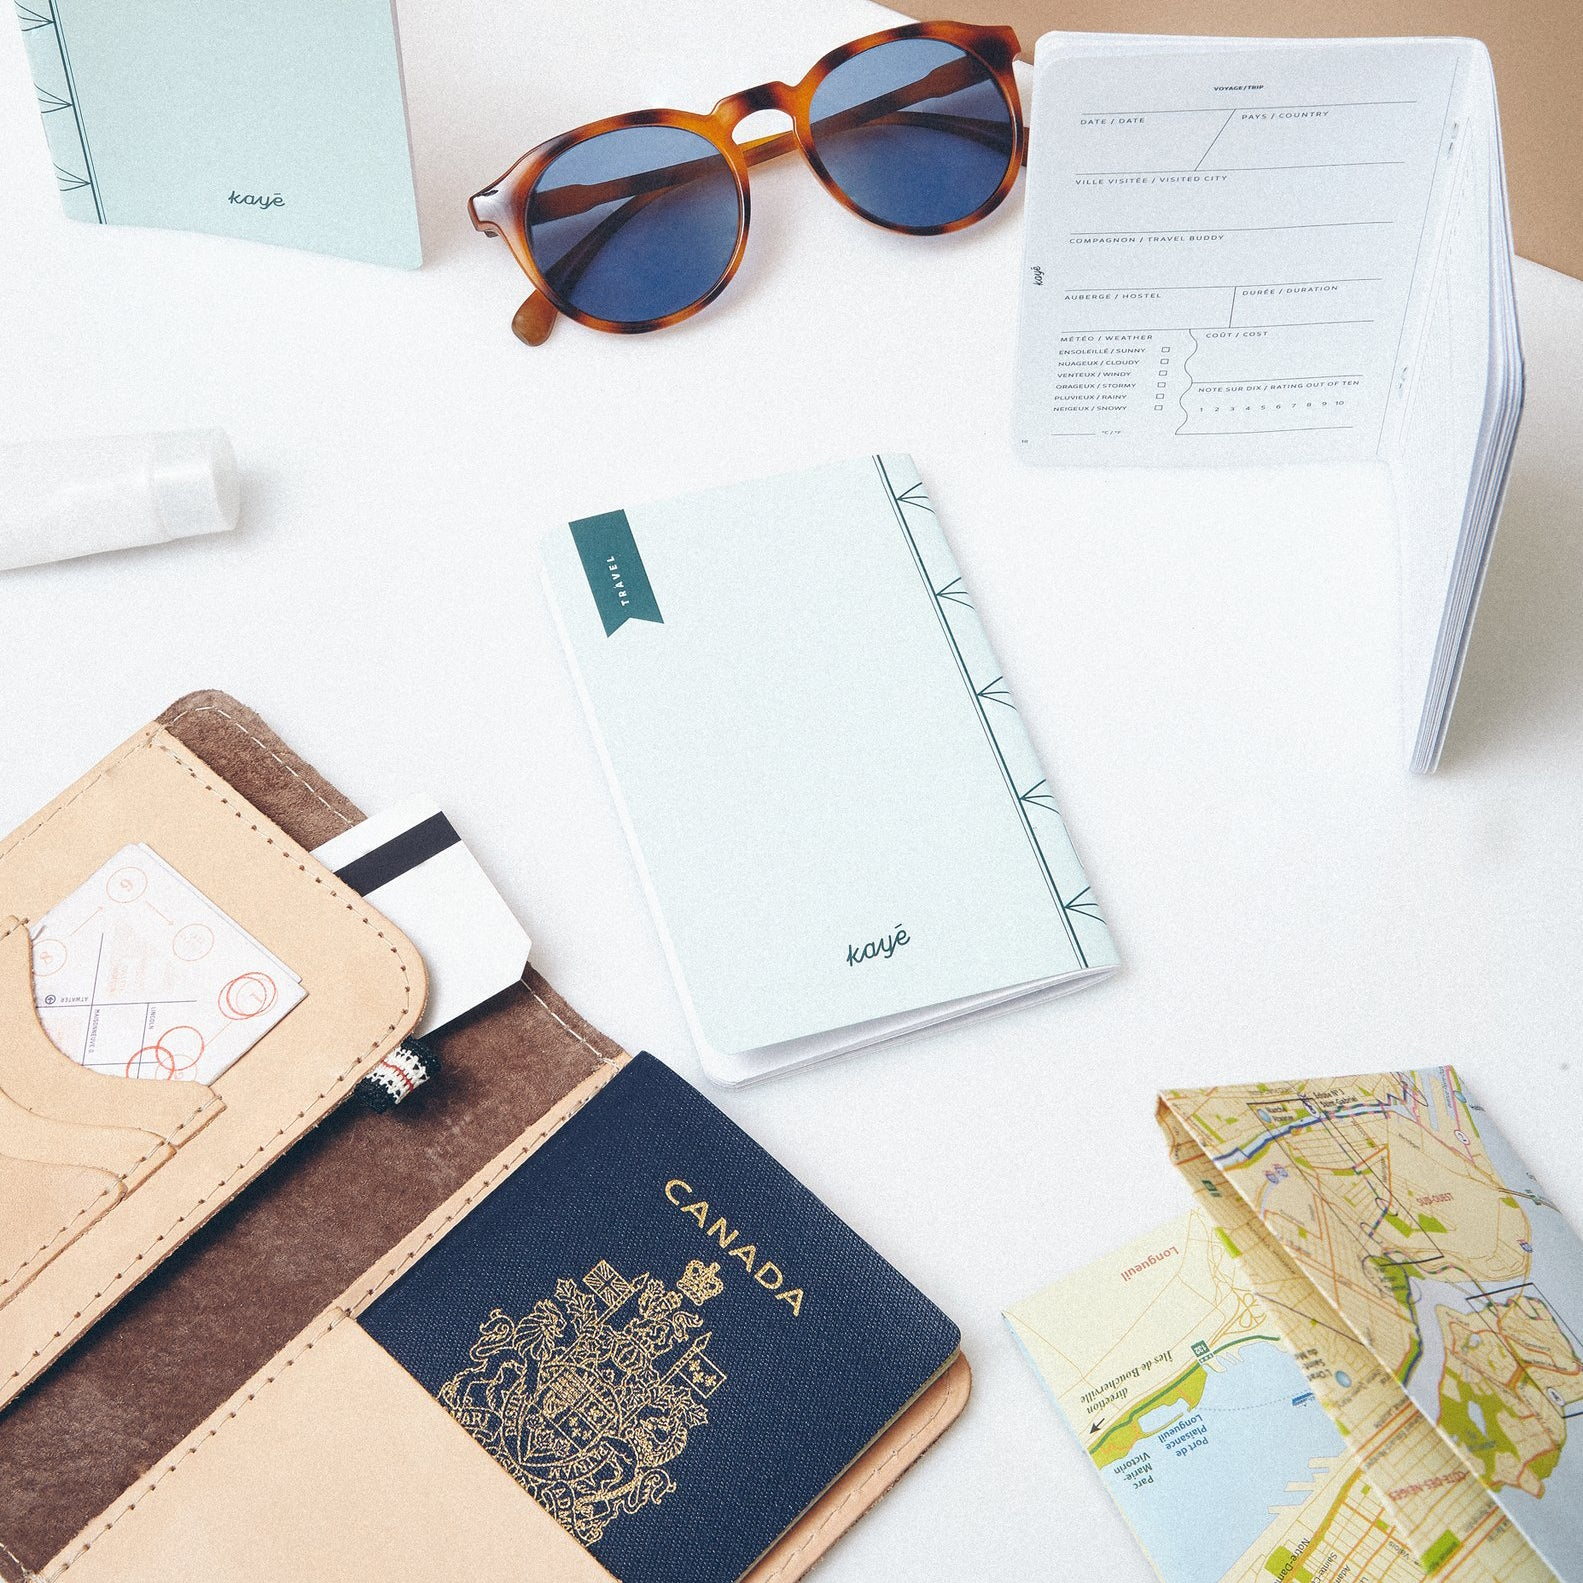 Kaye Notebook Travel Lifestyle